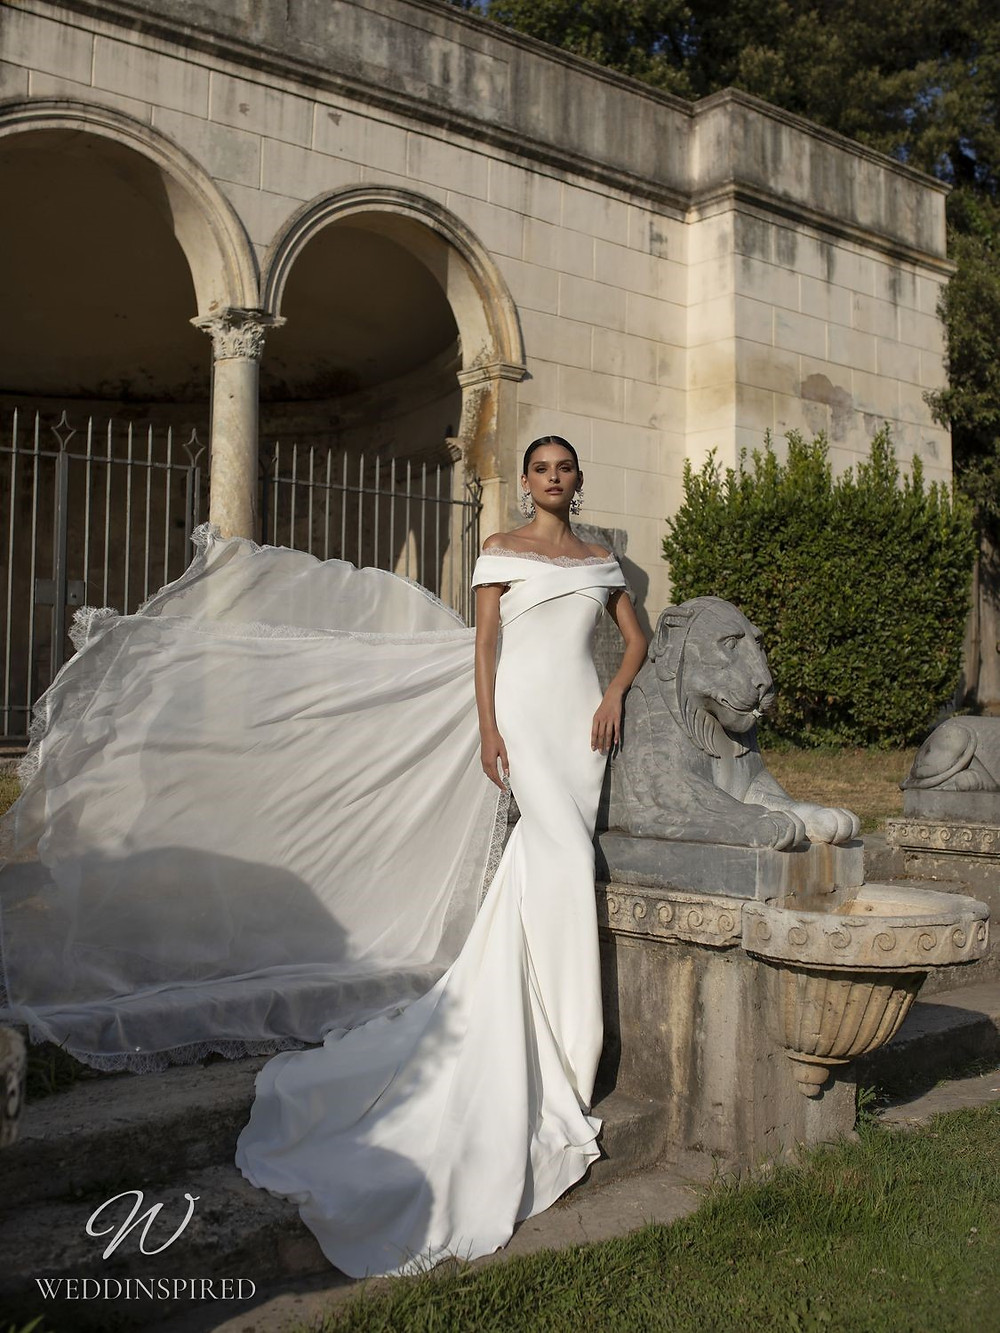 A Pinella Passaro off the shoulder mermaid wedding dress with a veil